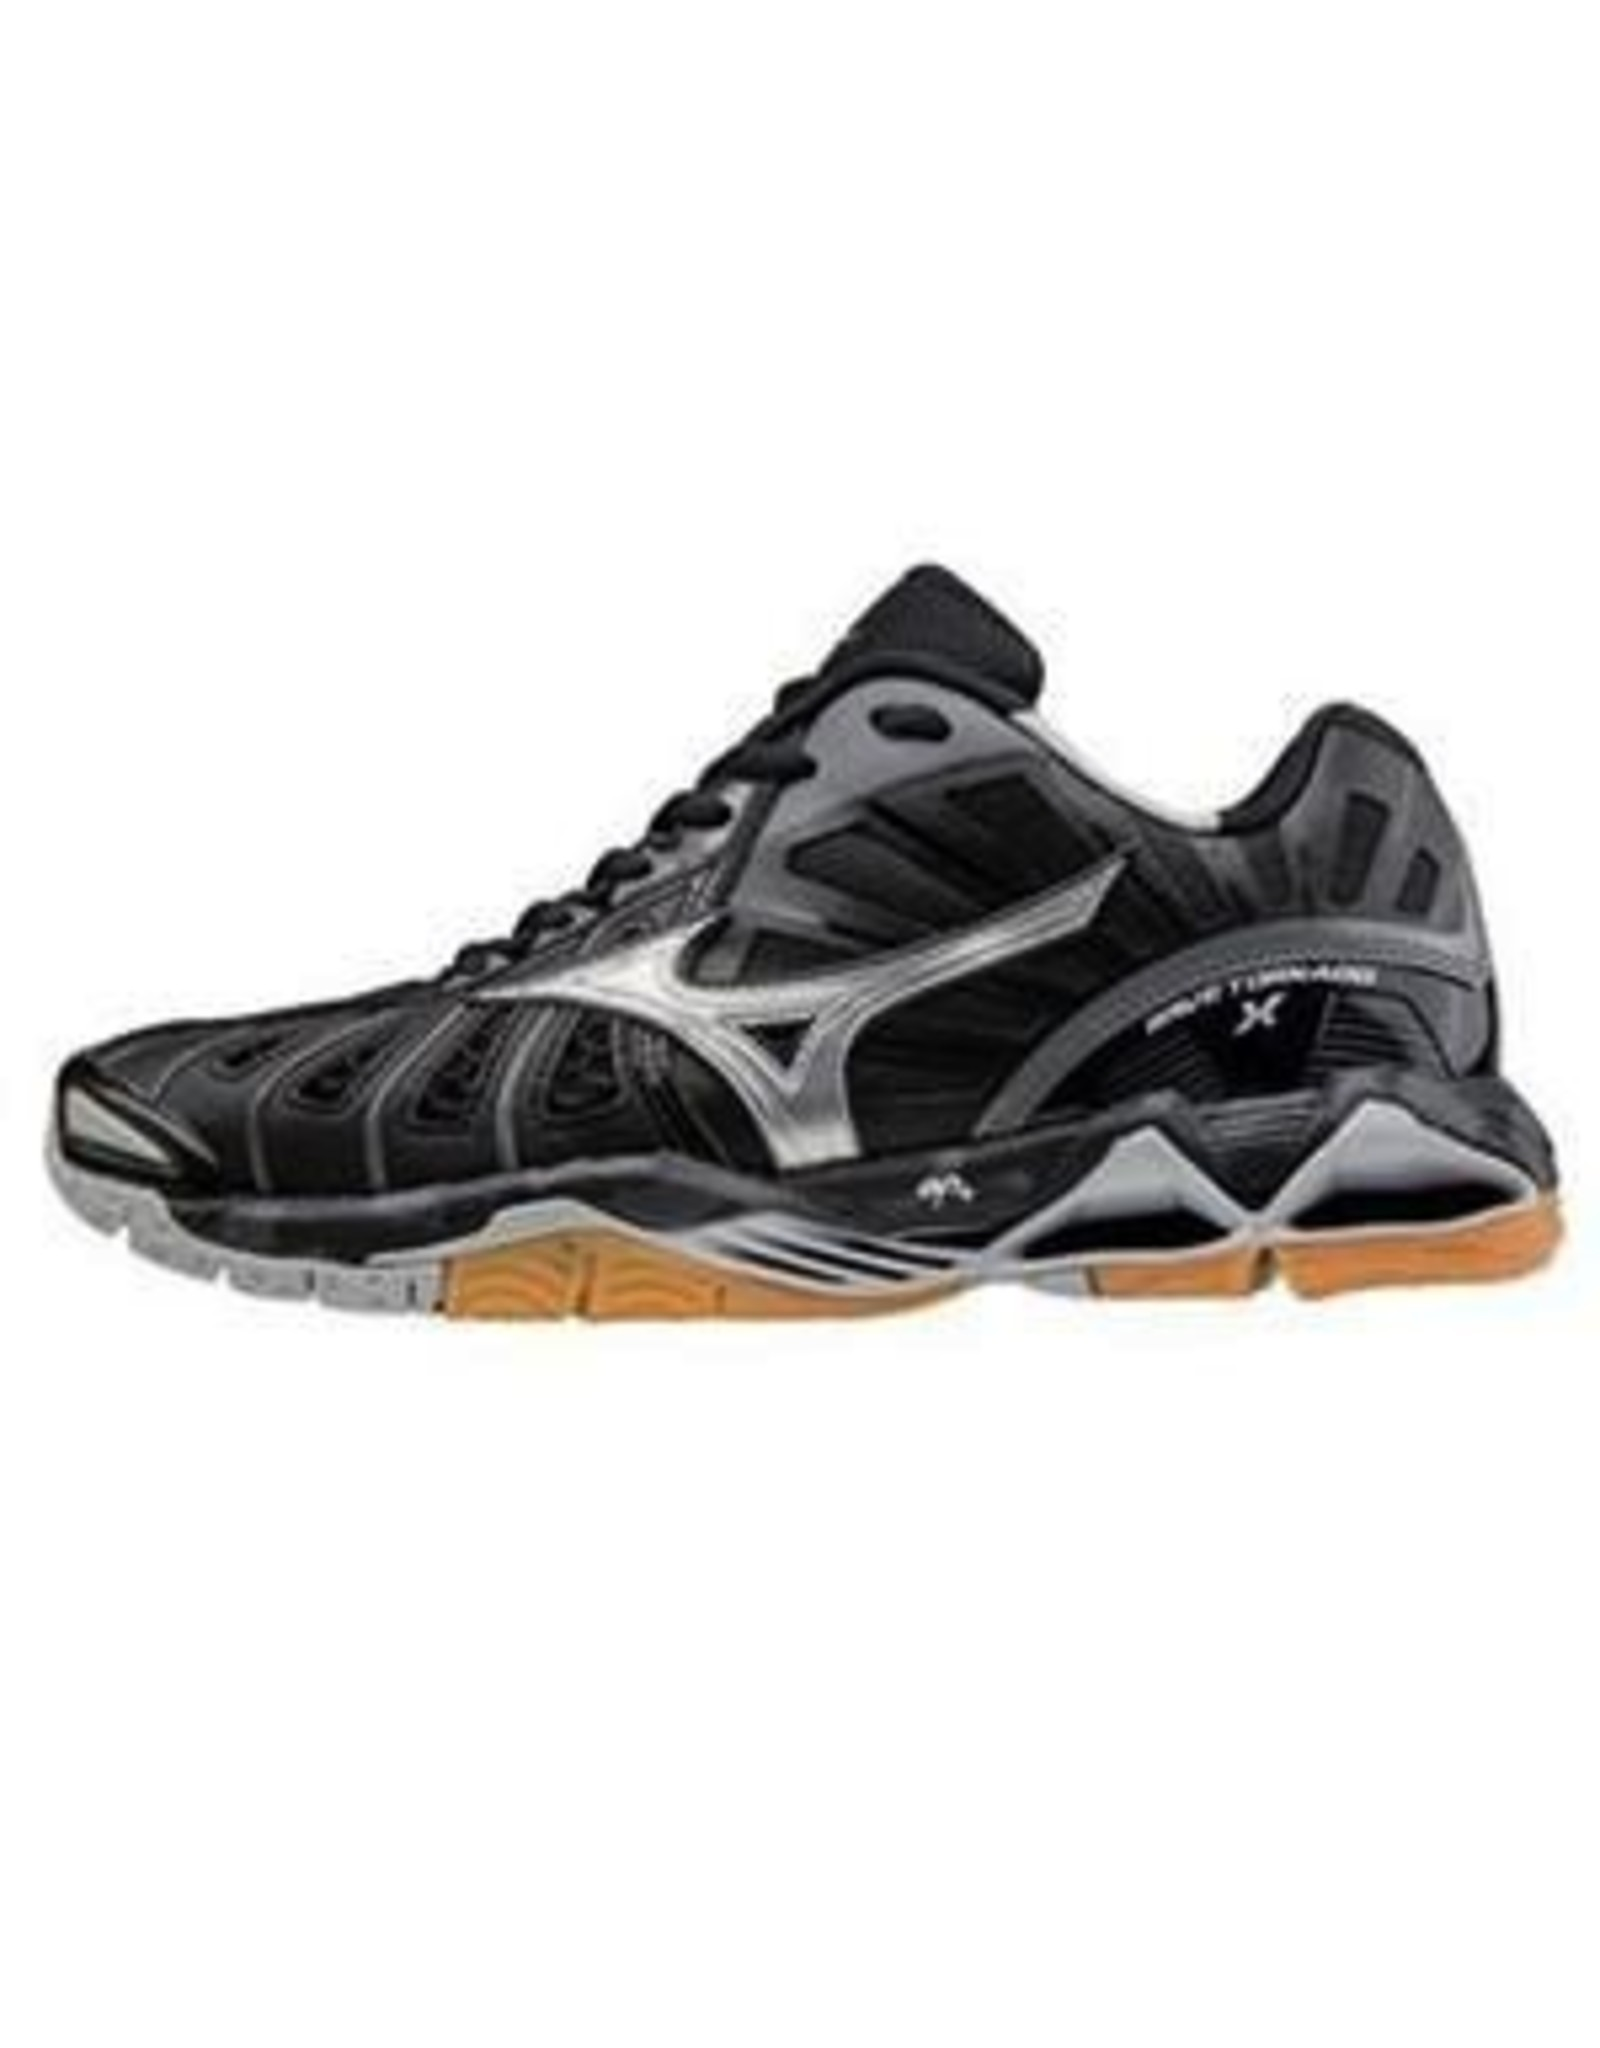 Mizuno The Women's Wave Tornado X offered in a classic low-cut. The Infinity Wave Plate in the shoe's heel offers premium cushioning and shock attenuation for the strenuous jumping and landing that occurs during court play. Ideal for use during both prac